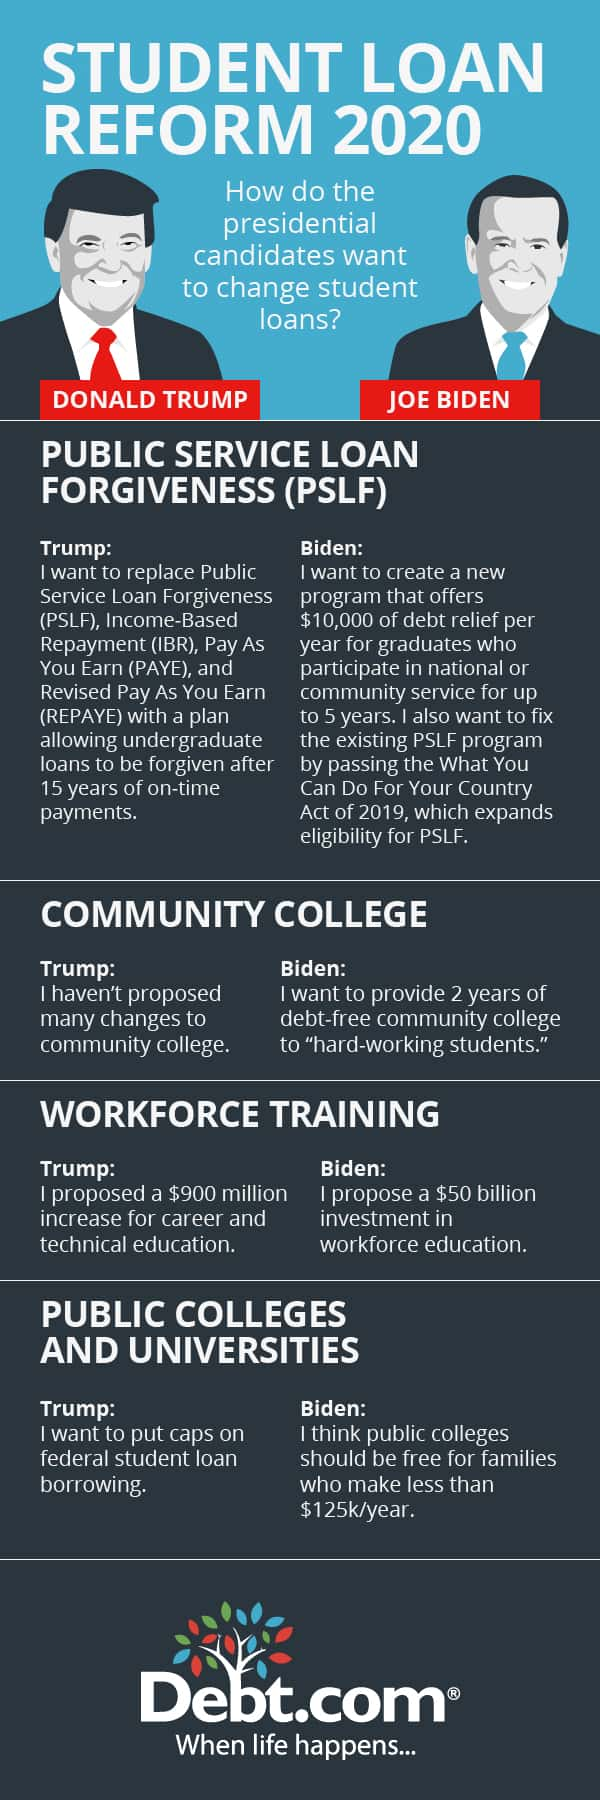 student loan reform 2020 candidates